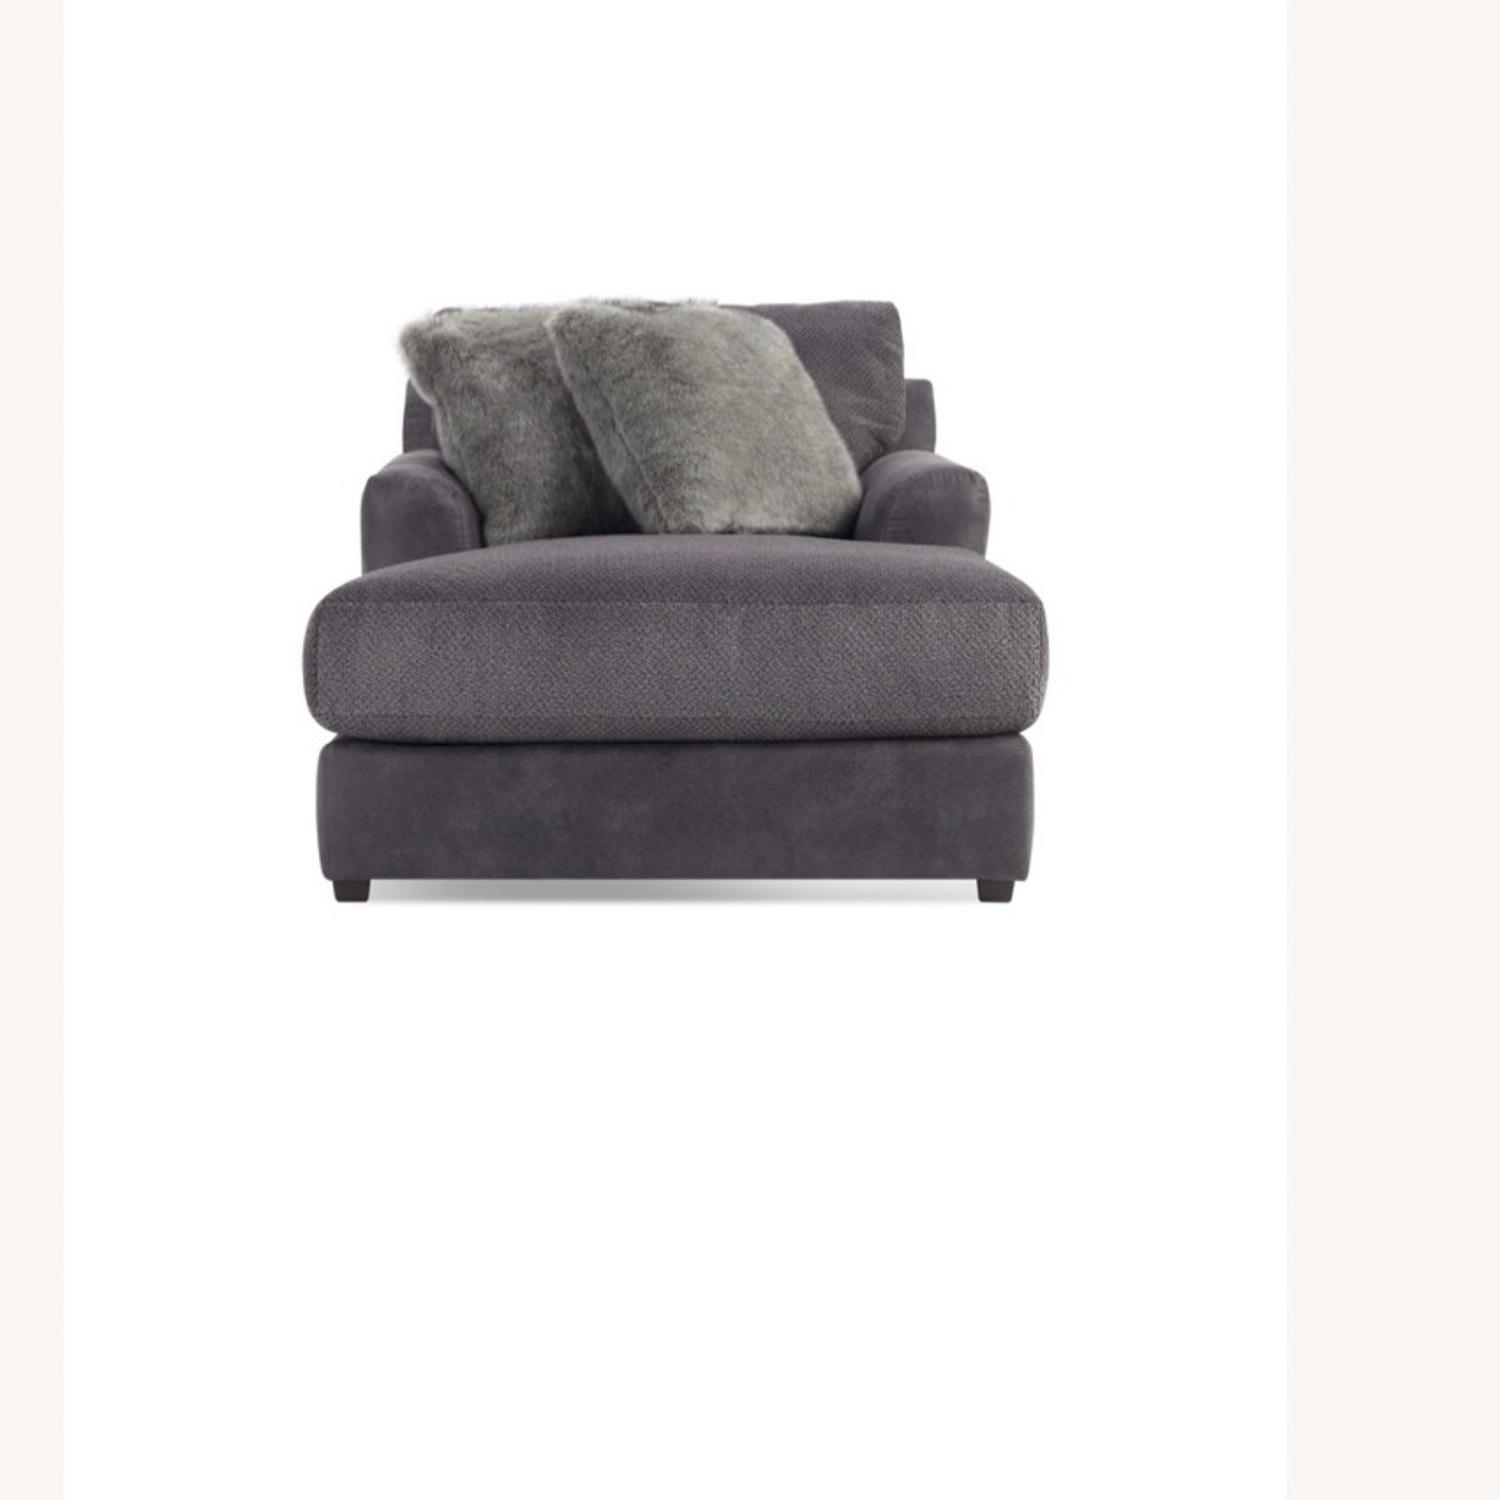 Bob's Discount Grey Chaise Lounge - image-0